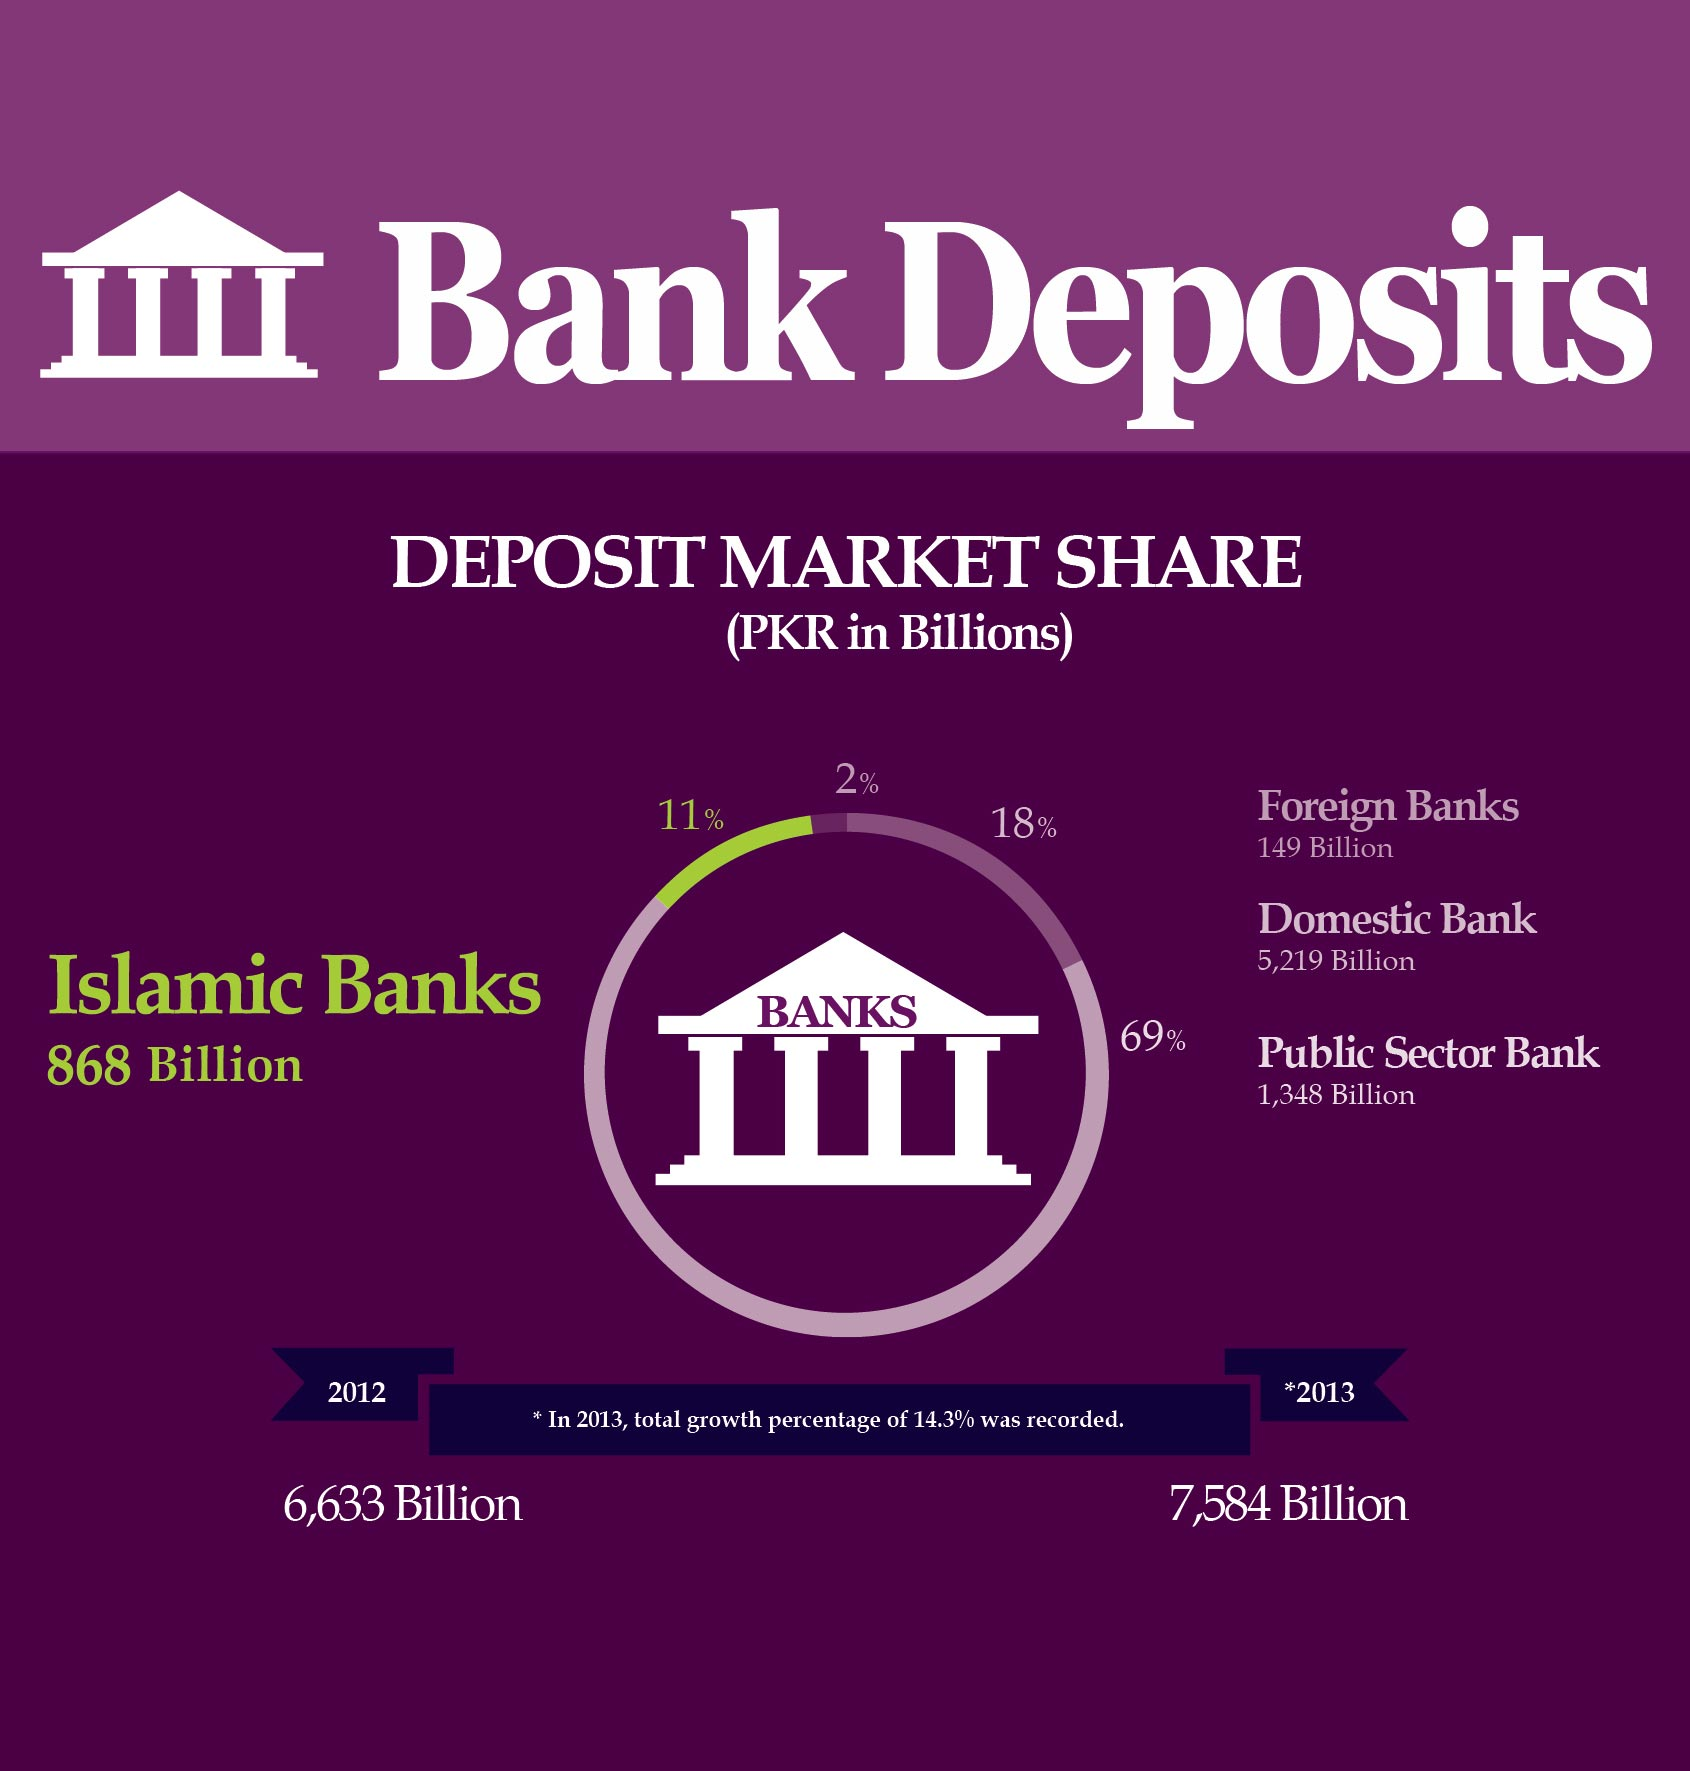 Bank Deposits from Jan-Dec 2013 in Pakistan